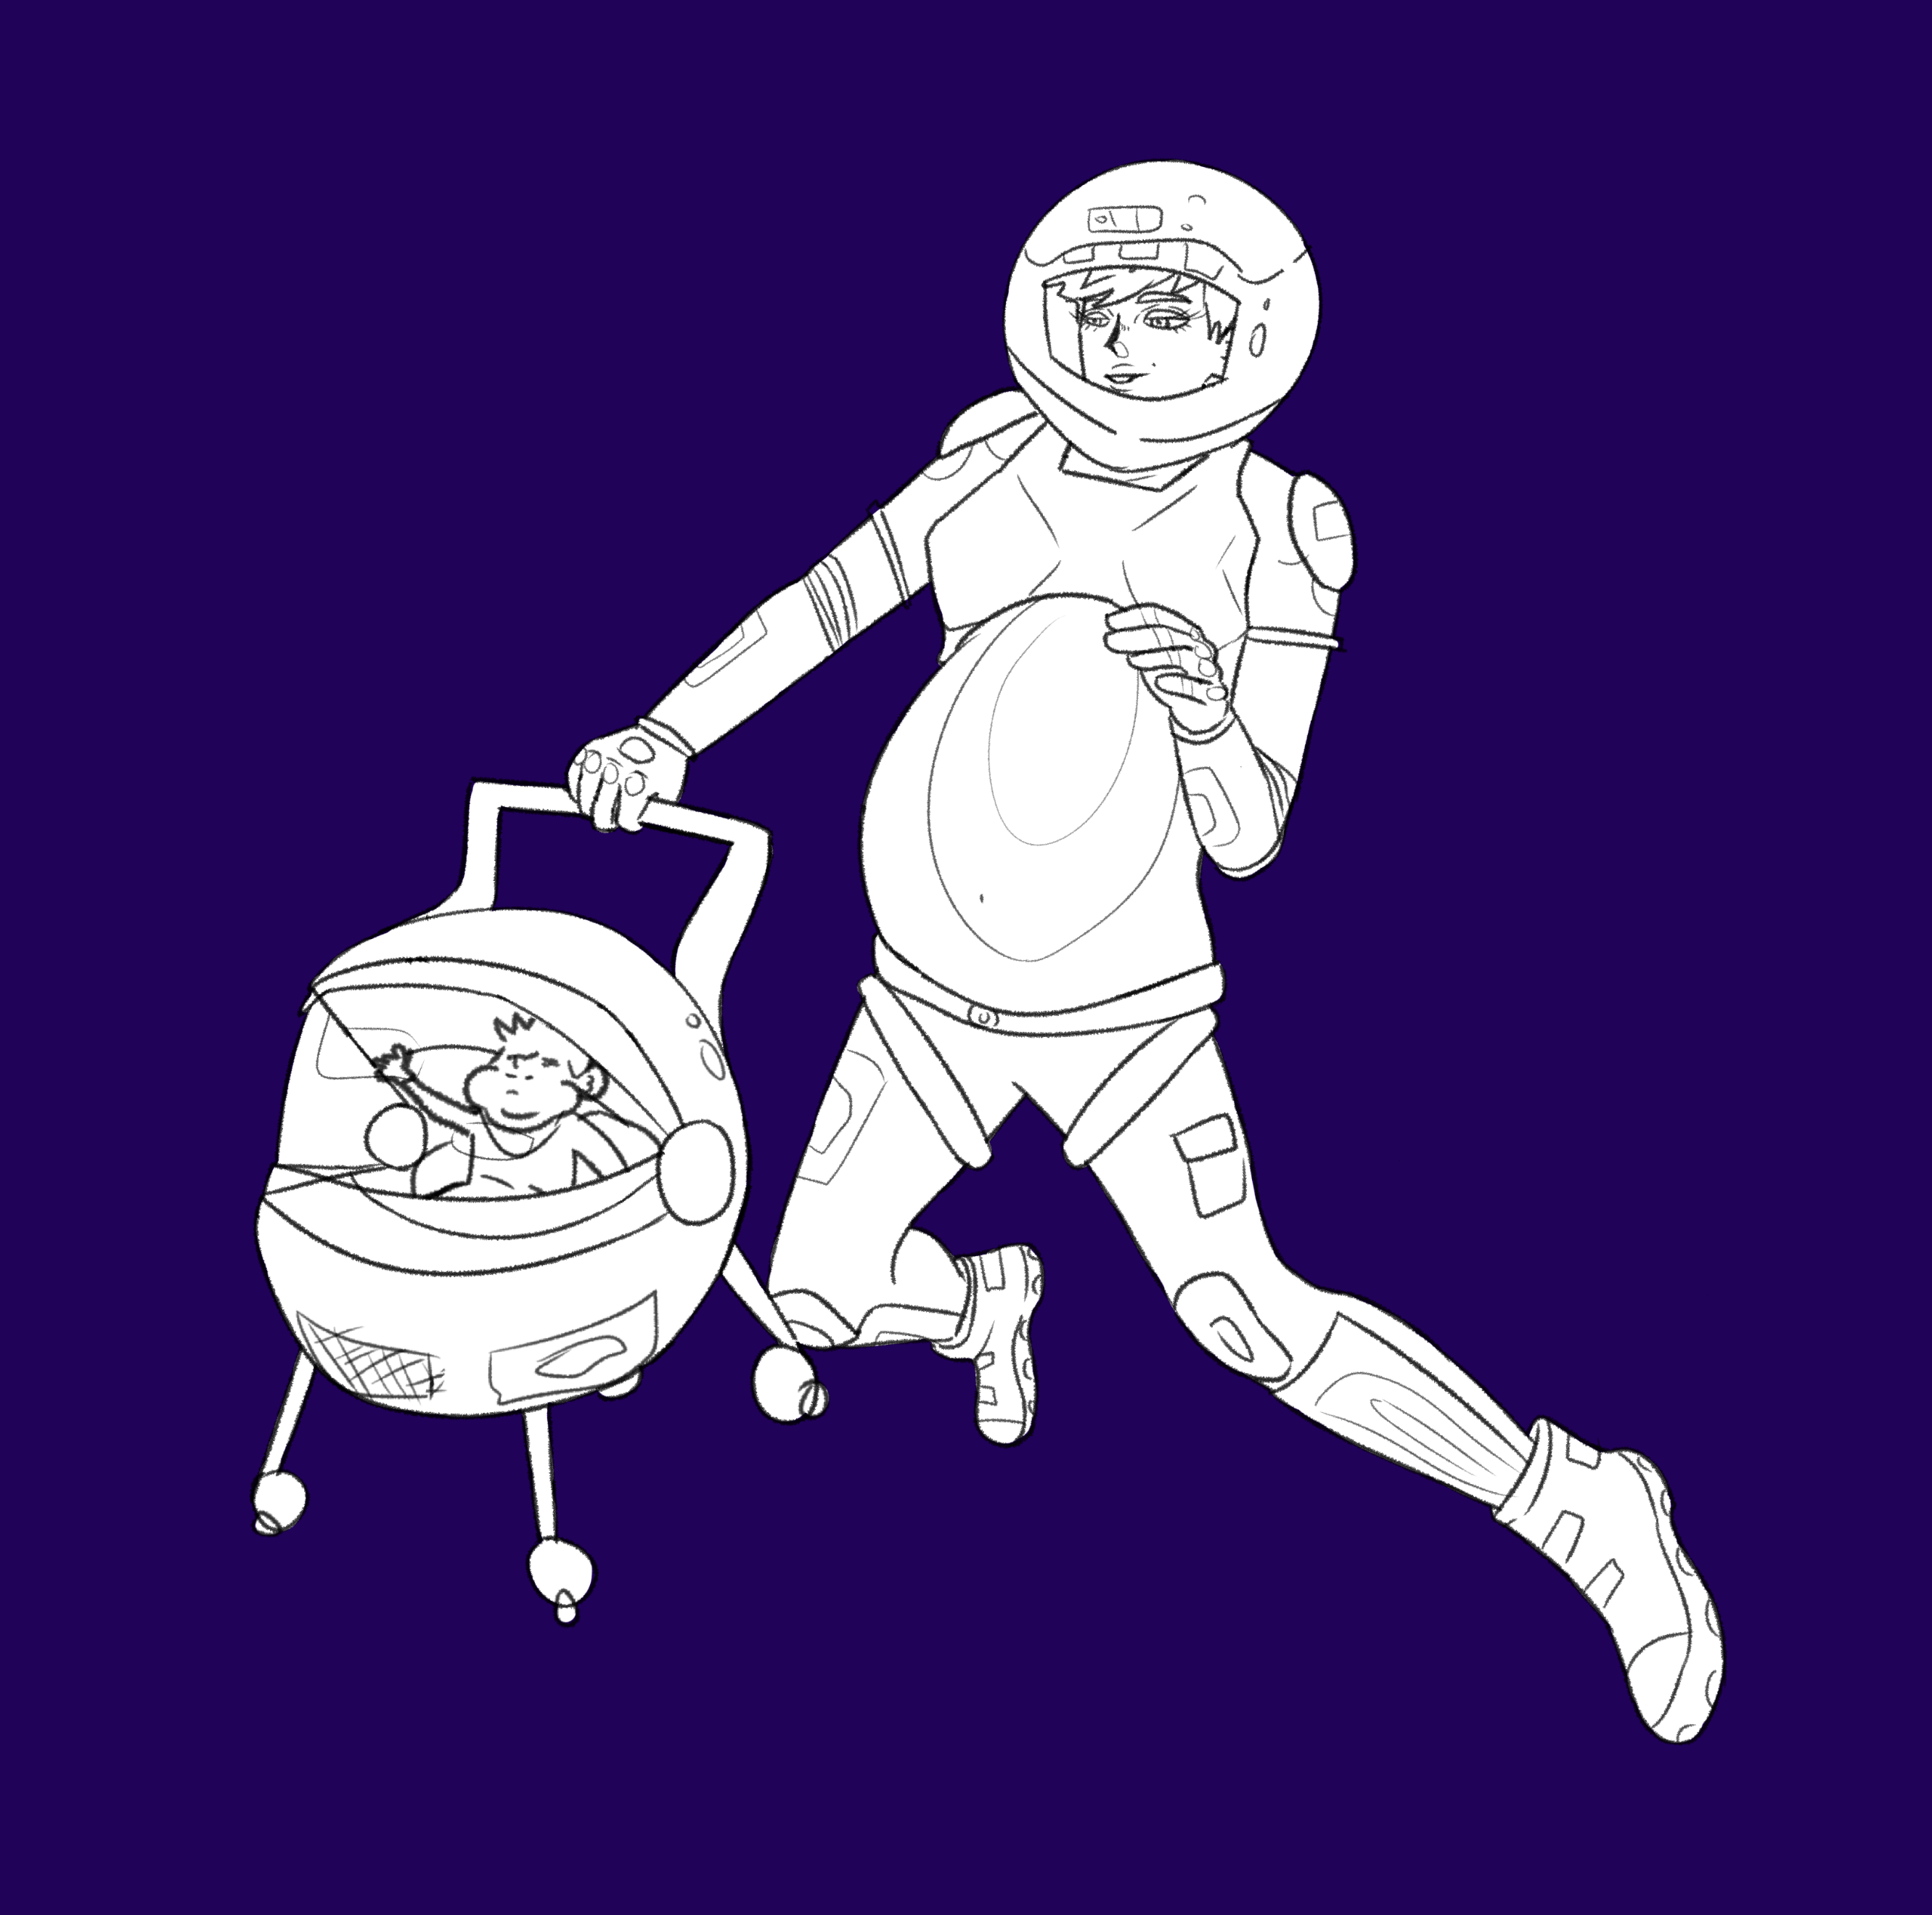 a pregnant woman with a stroller and baby, space walking.